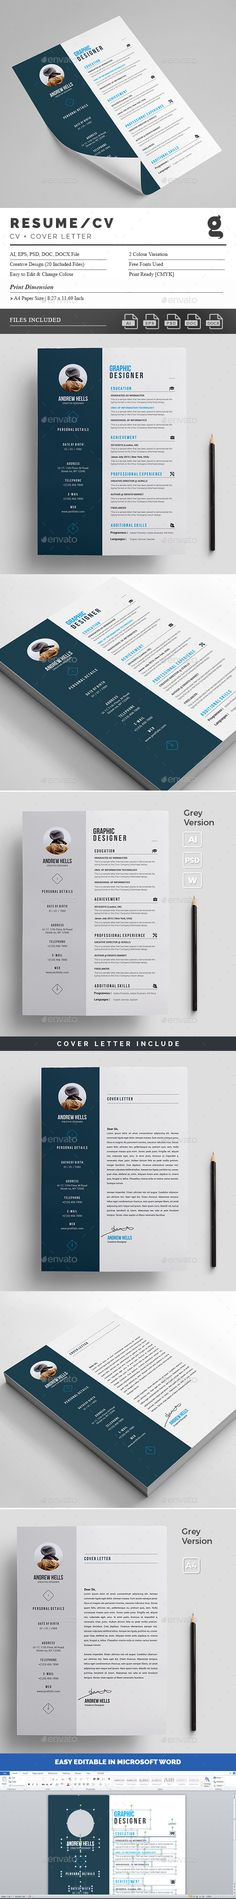 Resume\/CV - #Resumes #Stationery Download here https - net resume